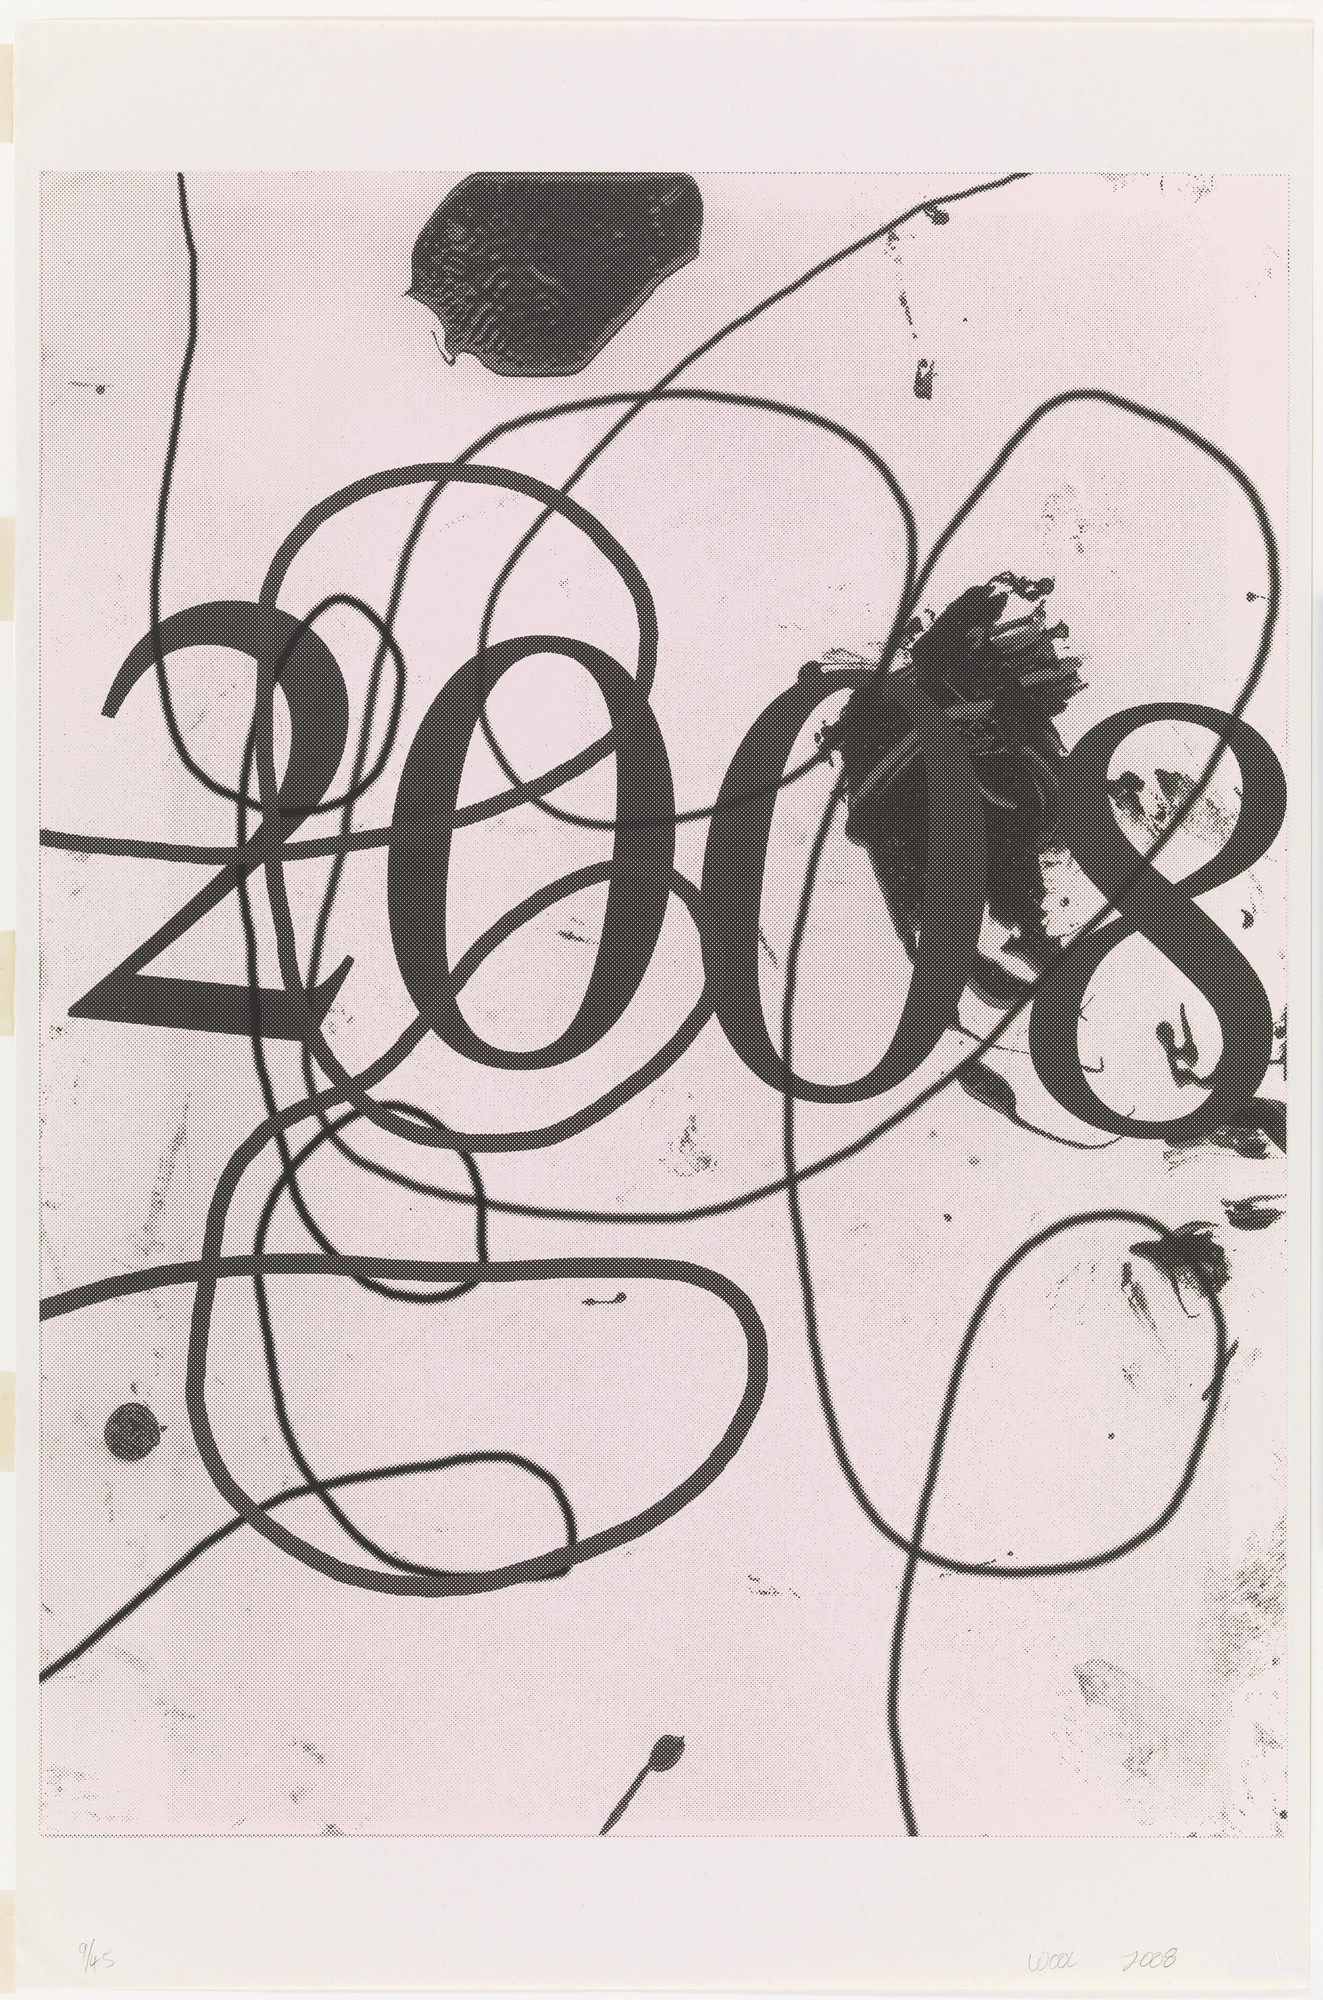 Christopher Wool. Wool 2008 (for Parkett no. 83). 2008